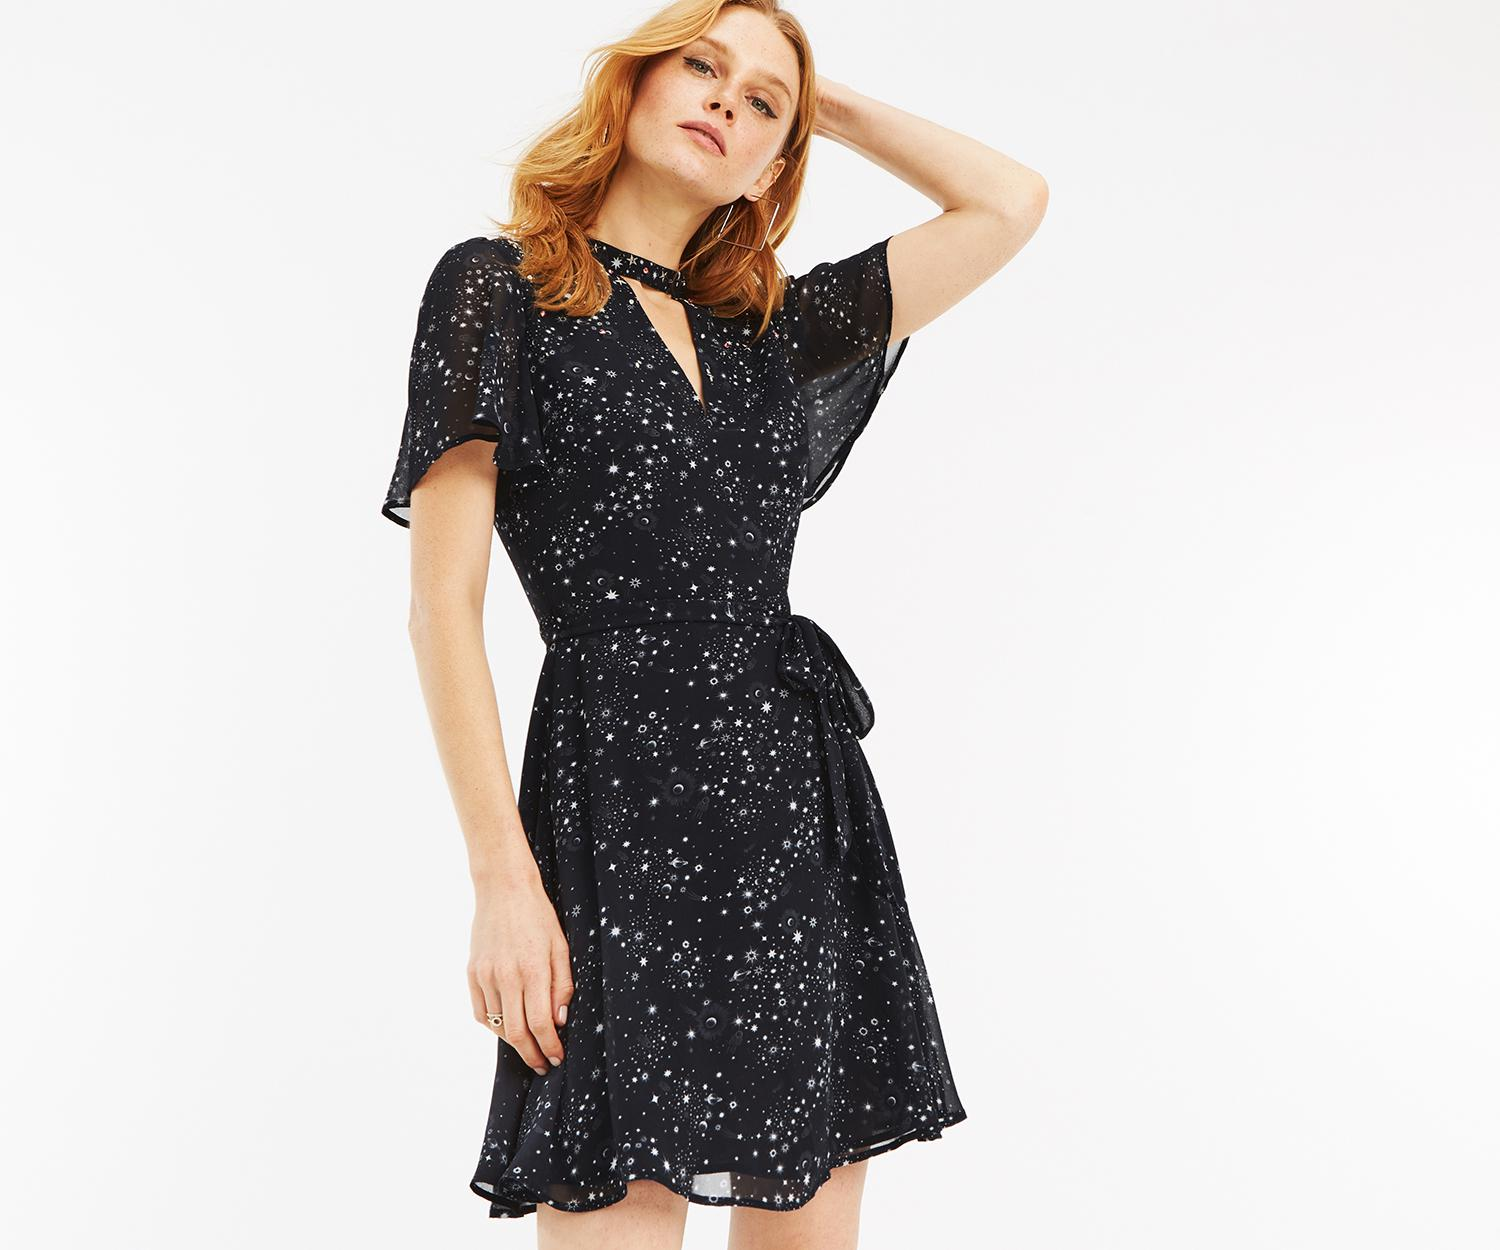 af8e760889ee Lyst - Oasis Star Print Skater Dress in Black